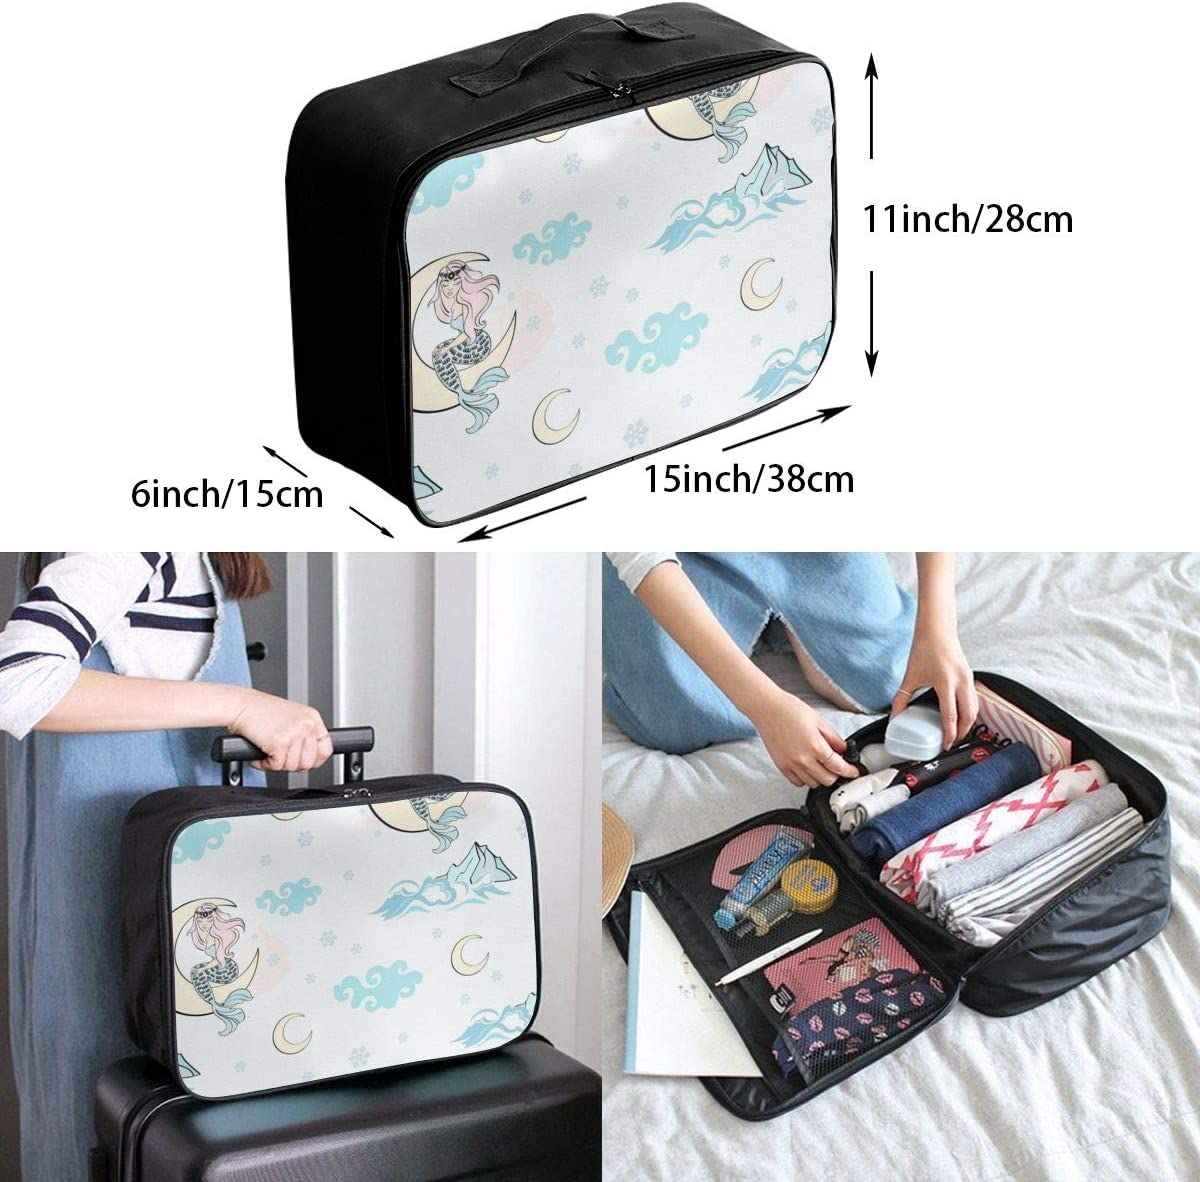 Yunshm Moon Mermaid Pattern Merry Christmas Personalized Trolley Handbag Waterproof Unisex Large Capacity For Business Travel Storage